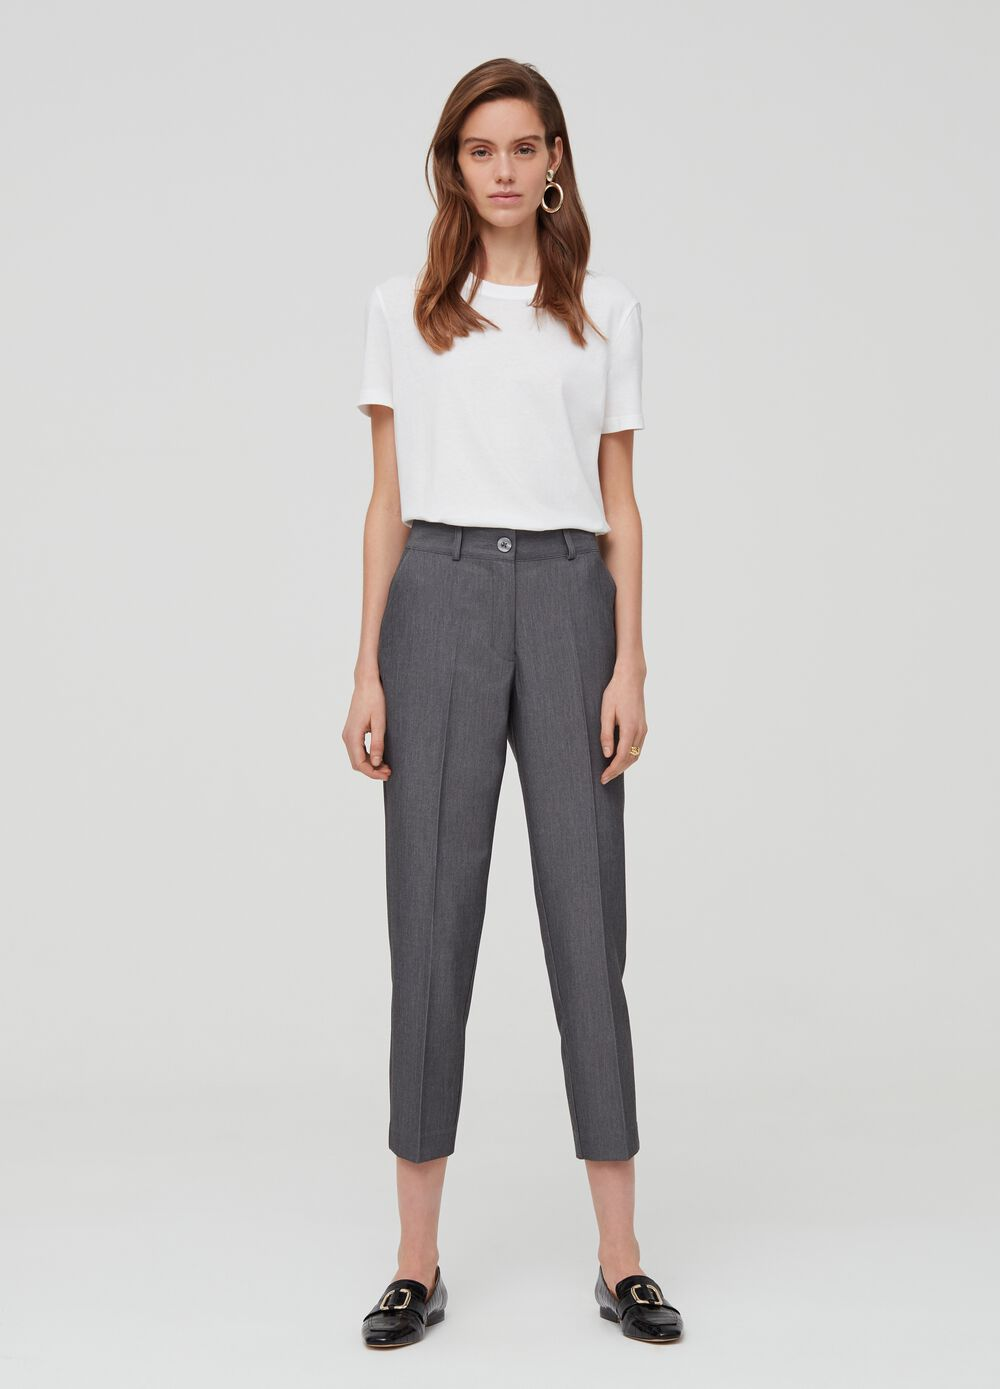 High-waisted trousers in viscose blend